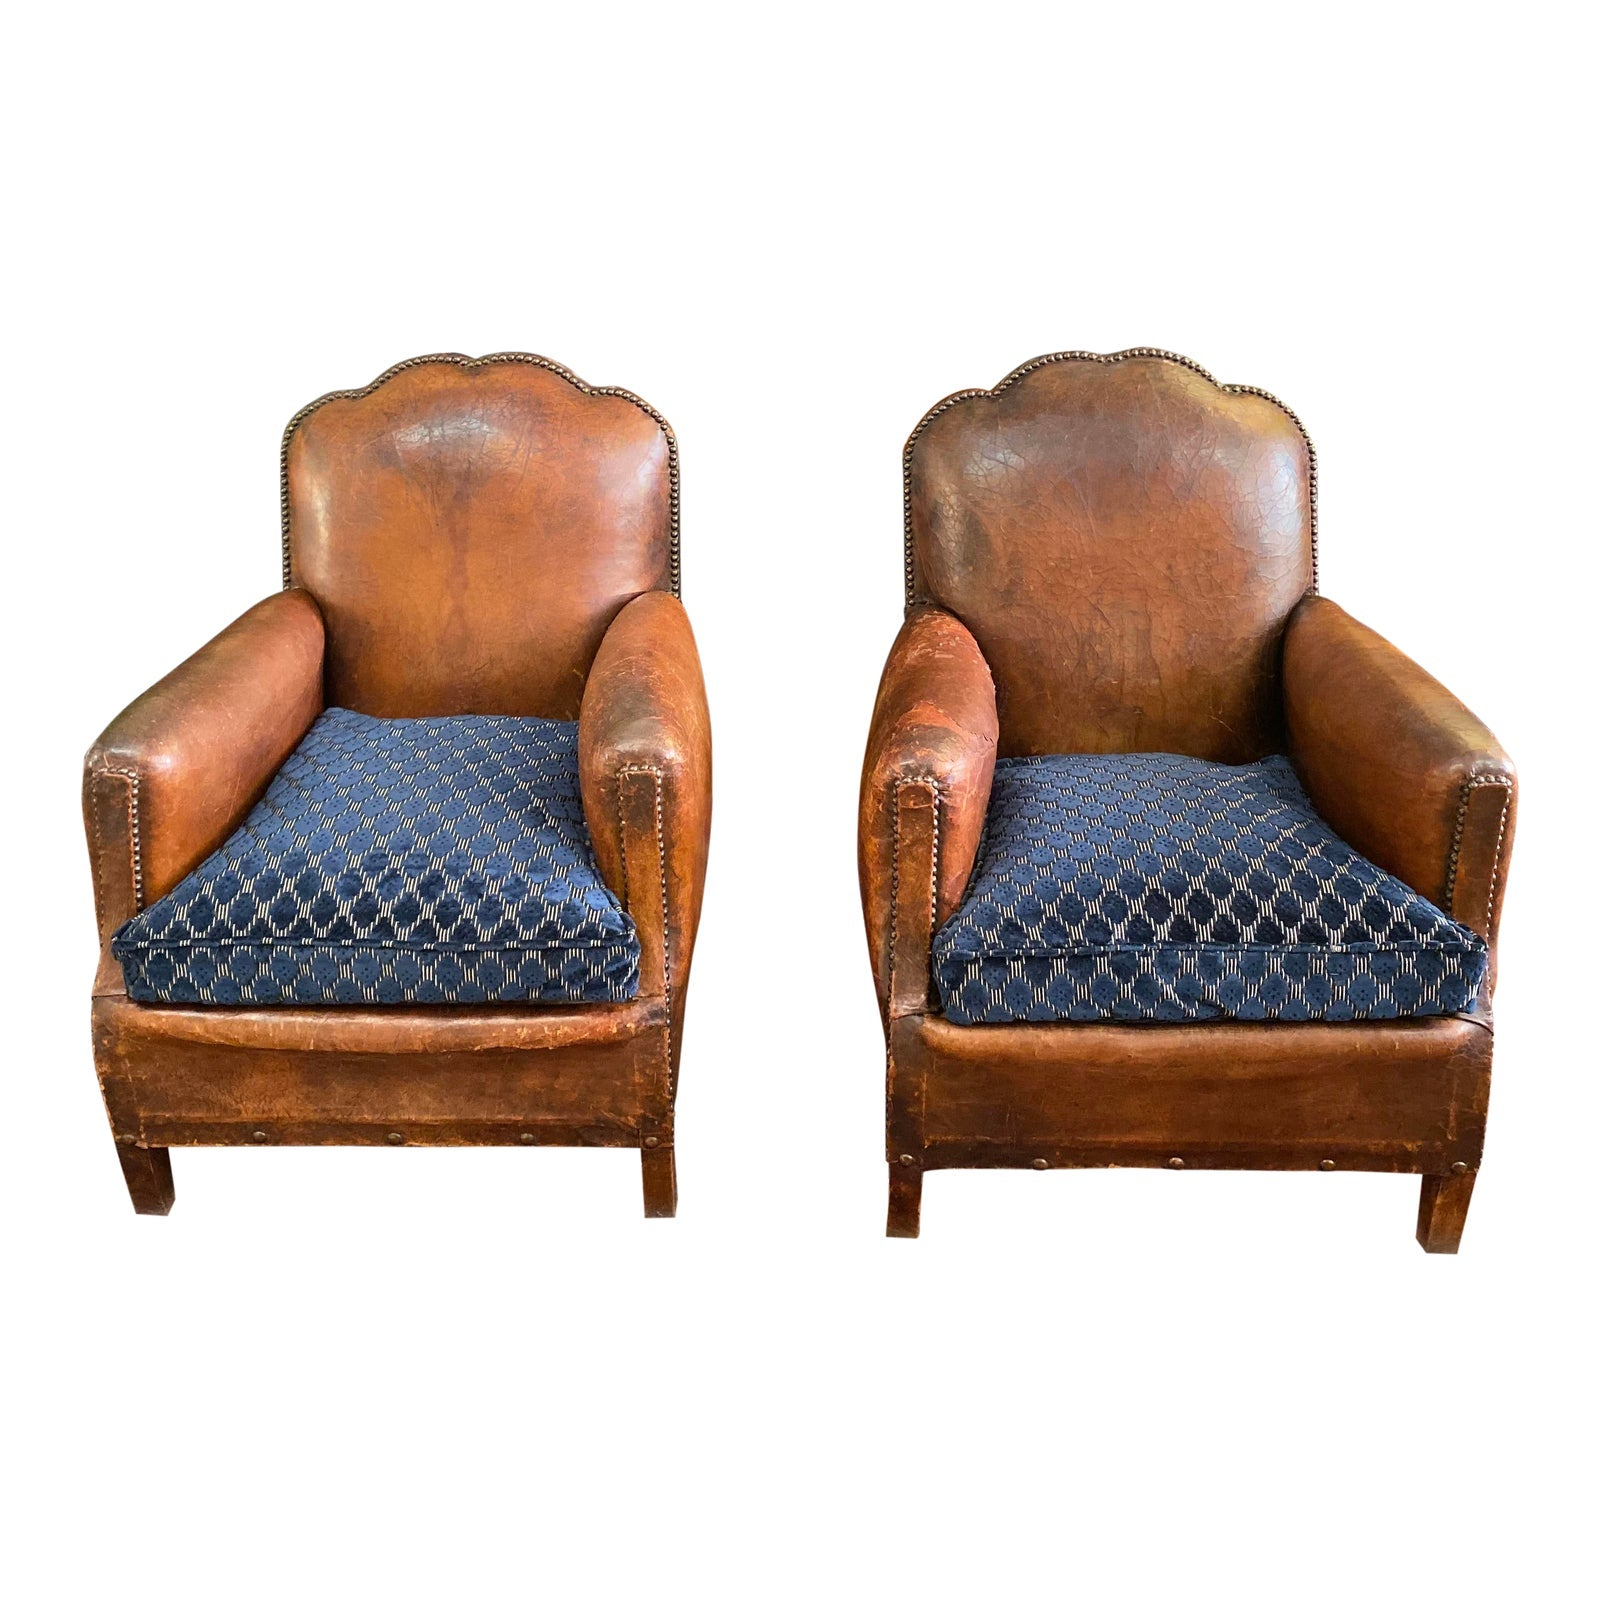 1930's Vintage Art Deco Leather Club Chairs - A Pair - French Antiques www.Decoparis.com